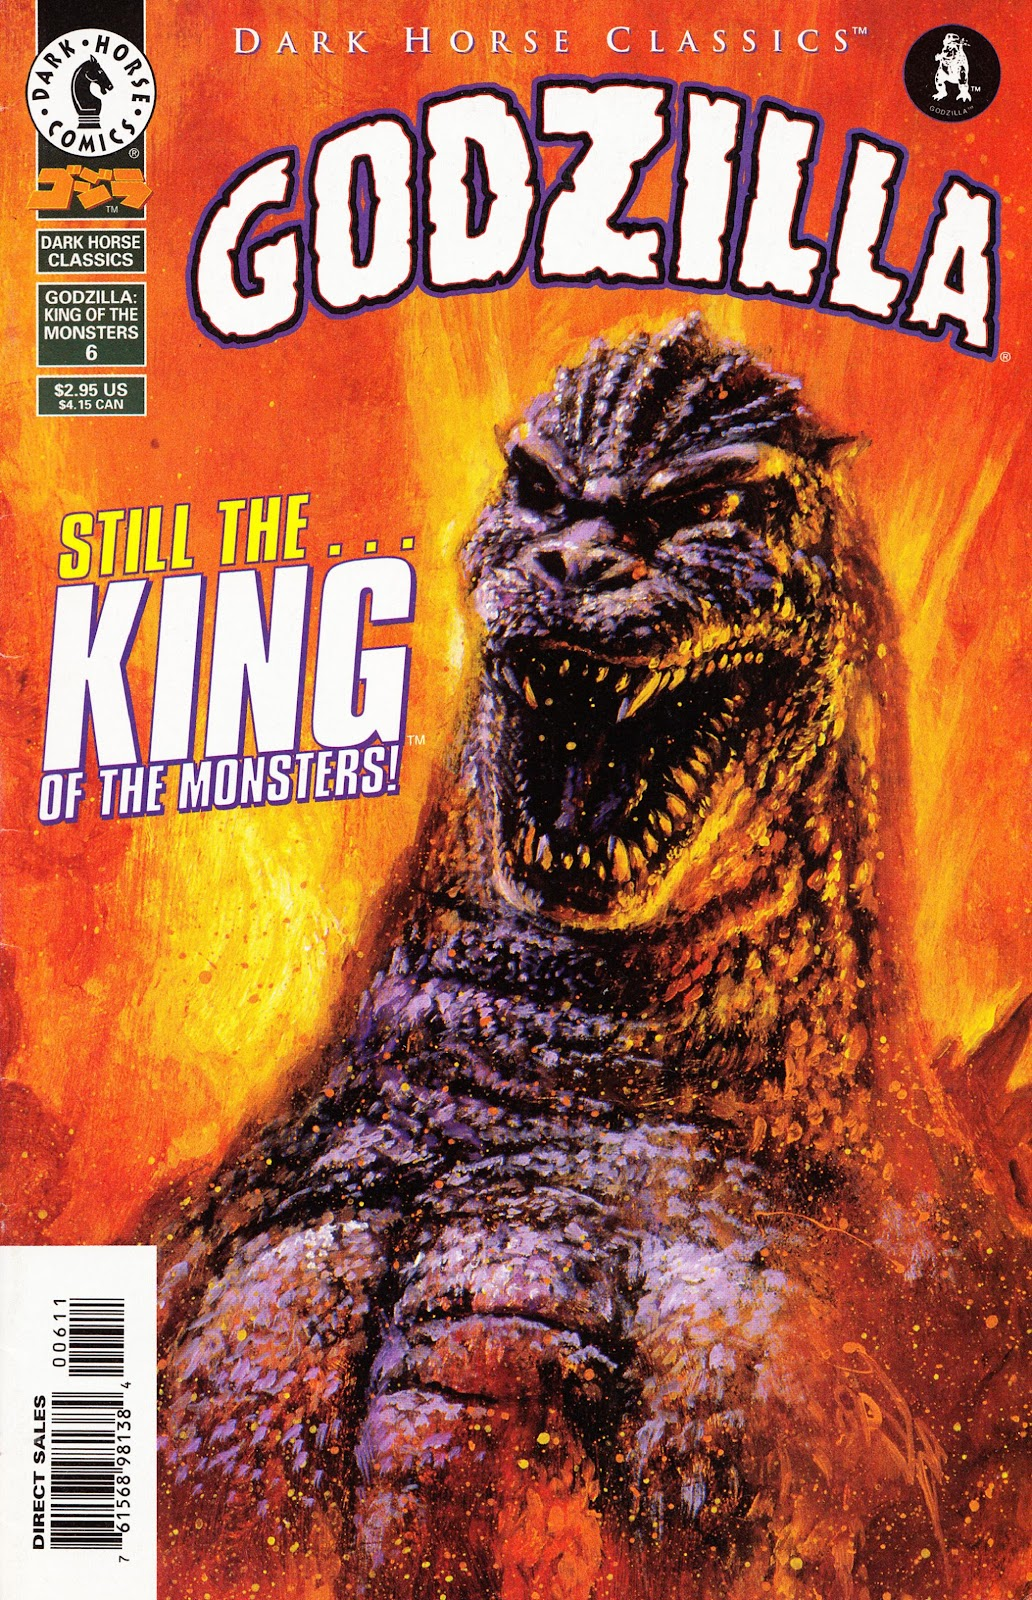 Dark Horse Classics: Godzilla - King of the Monsters issue 6 - Page 1